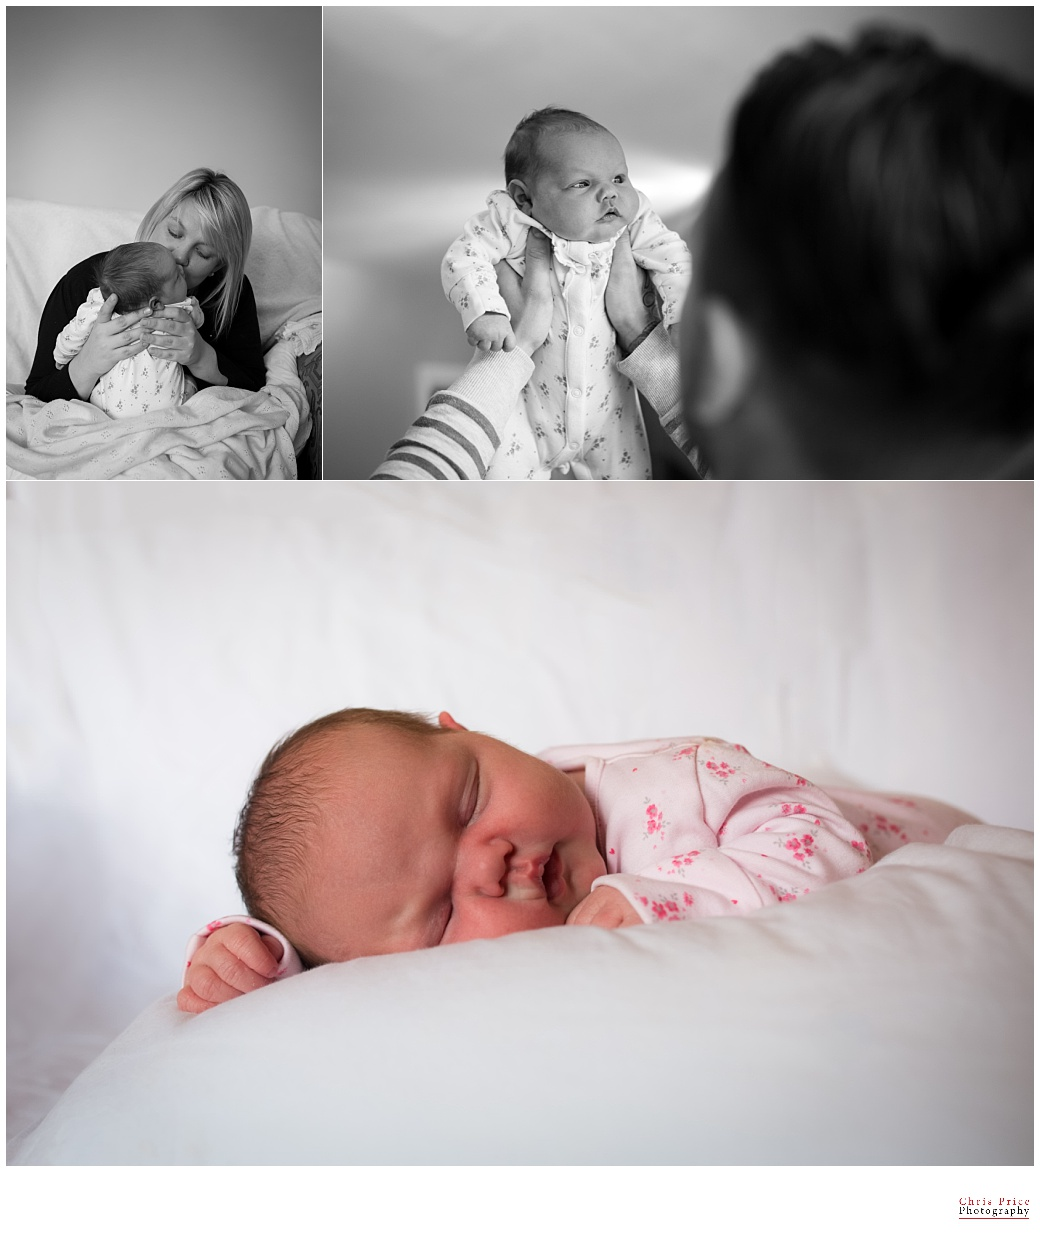 Chris Price Photography, Newborn Photography Pembrokeshire